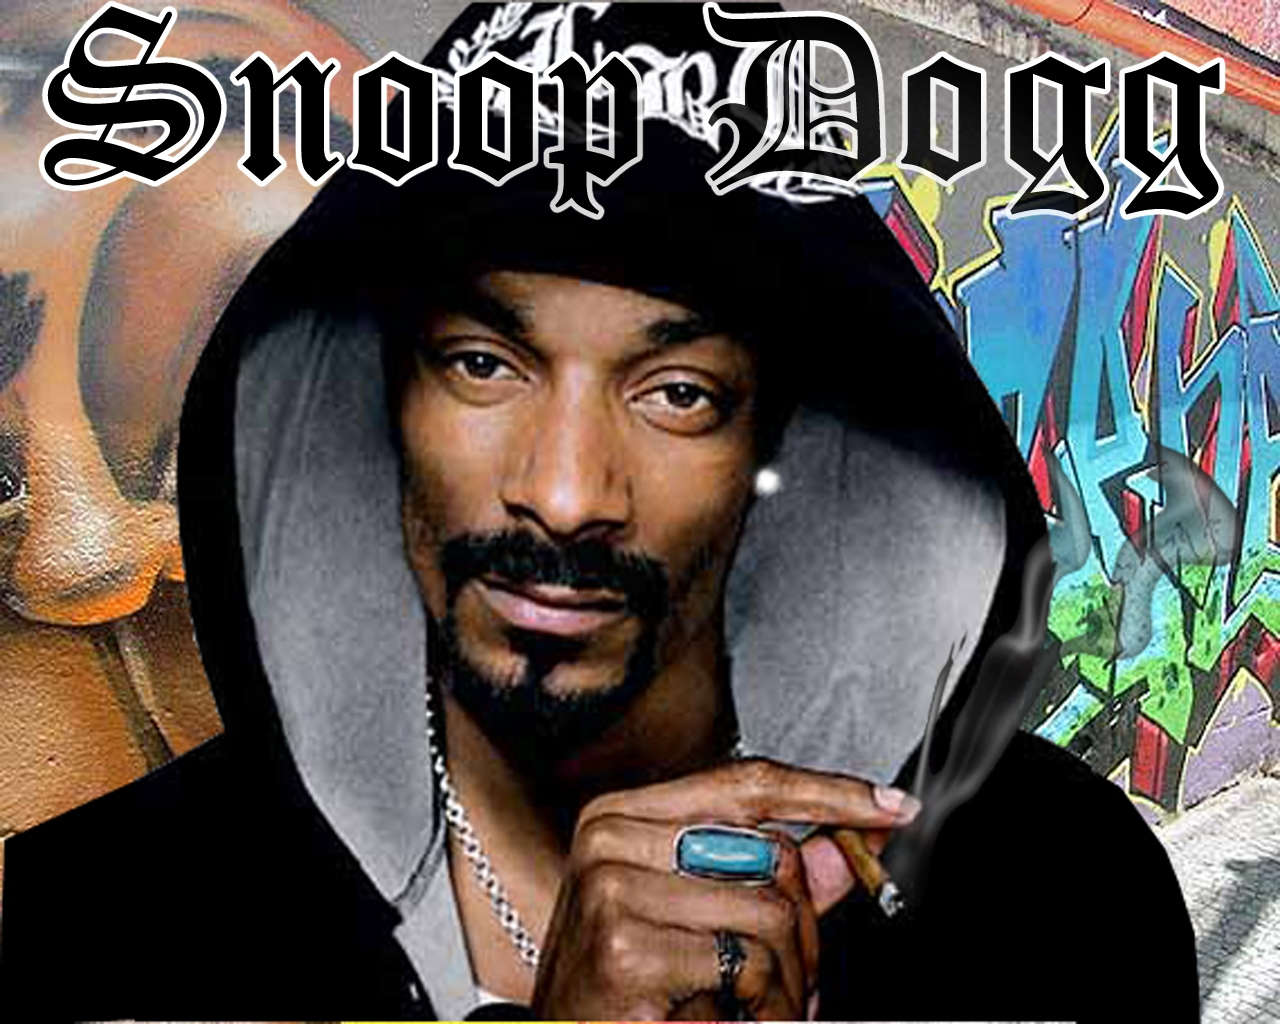 ... Snoop Dogg 1280 x 1024 · 647 kB · jpeg